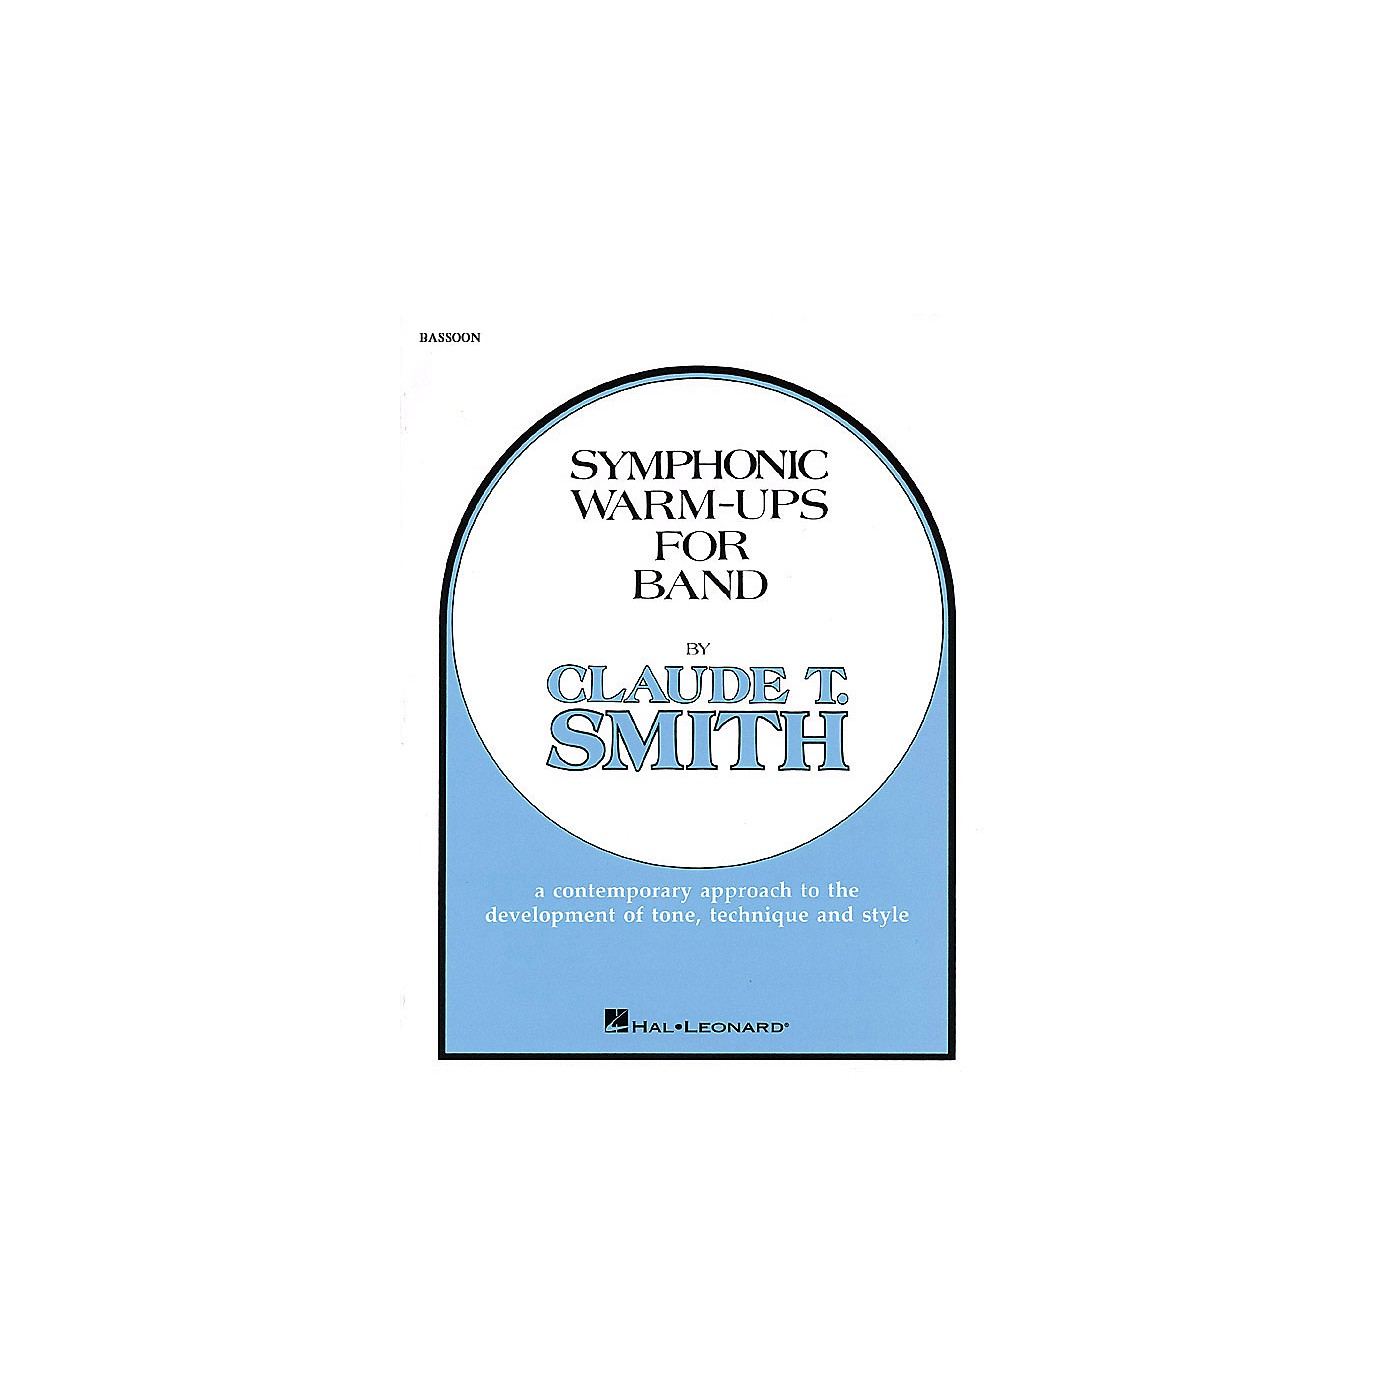 Hal Leonard Symphonic Warm-Ups for Band (Bassoon) Concert Band Level 2-3 Composed by Claude T. Smith thumbnail